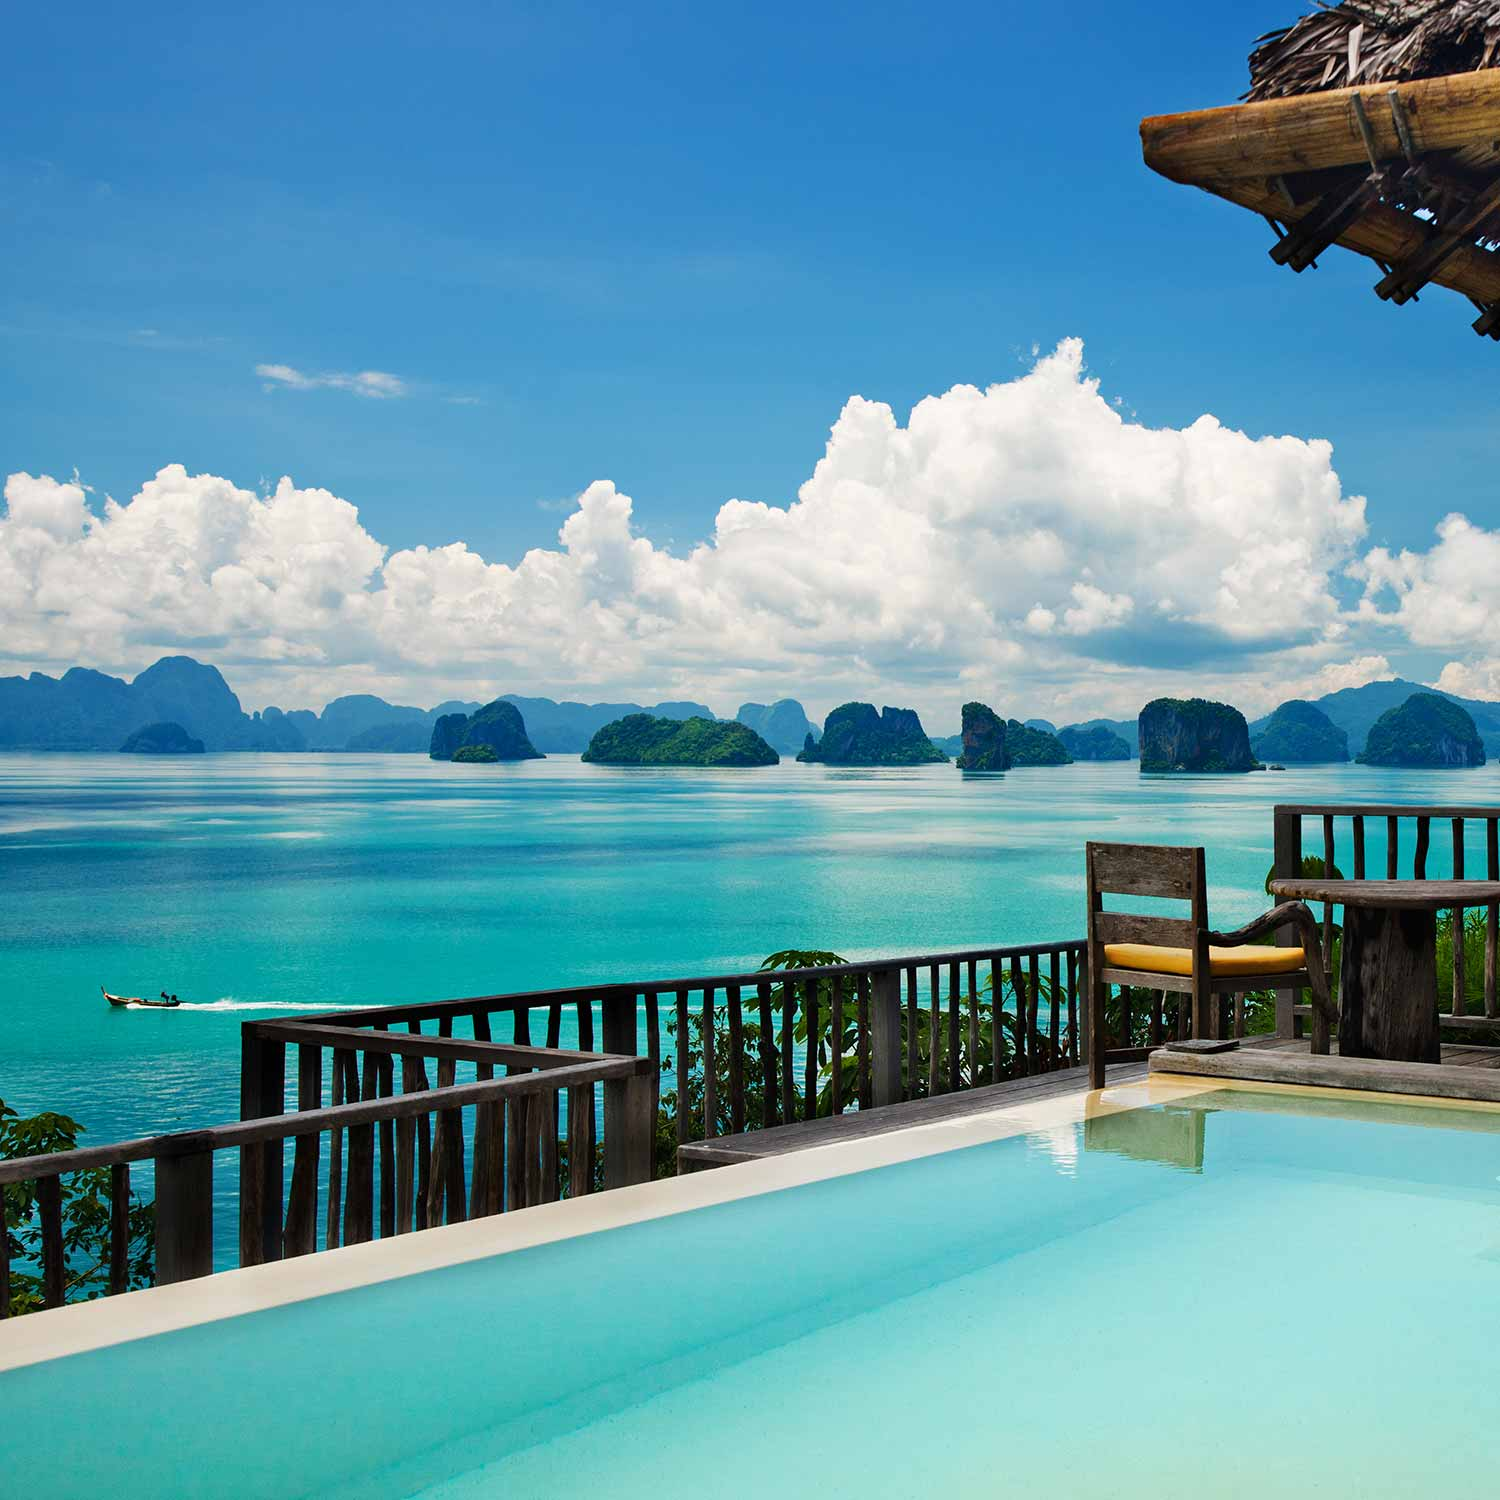 Beach and Relaxation vacations booked through Le Grande Butler Travel